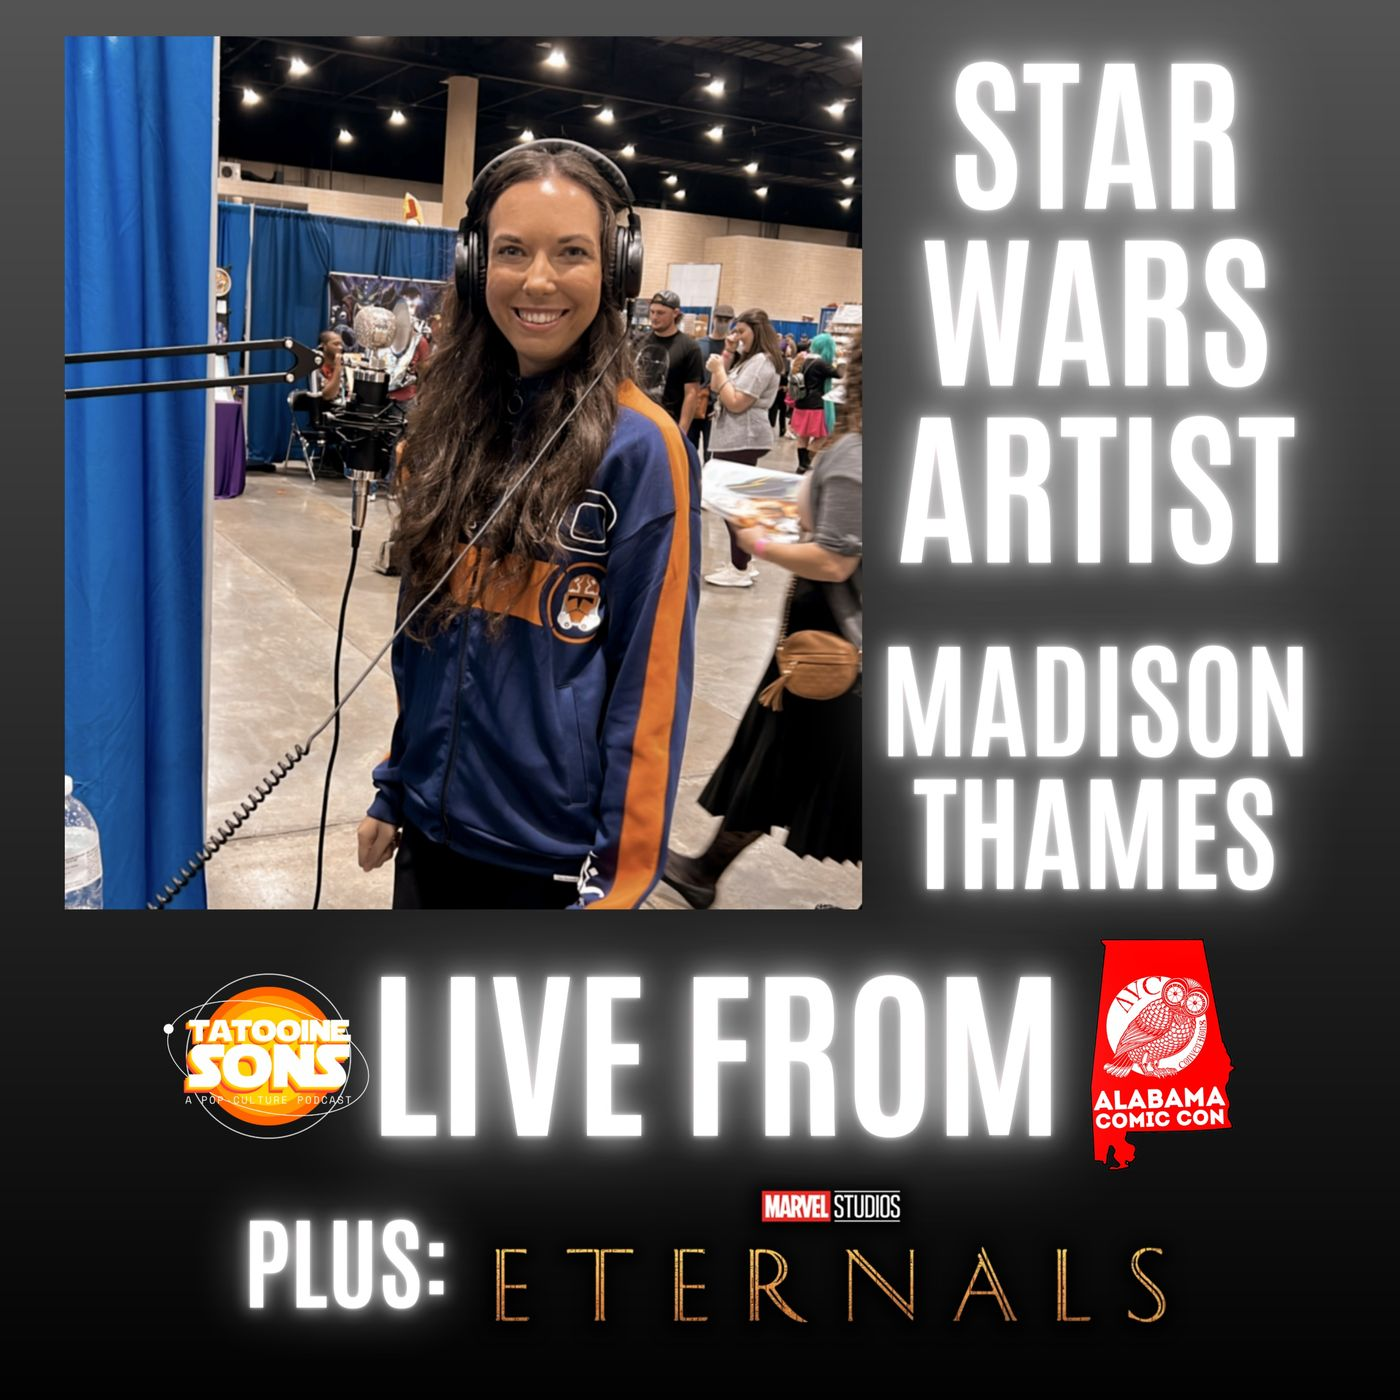 Star Wars and Marvel Artist Madison Thames! PLUS more Eternals Discussion